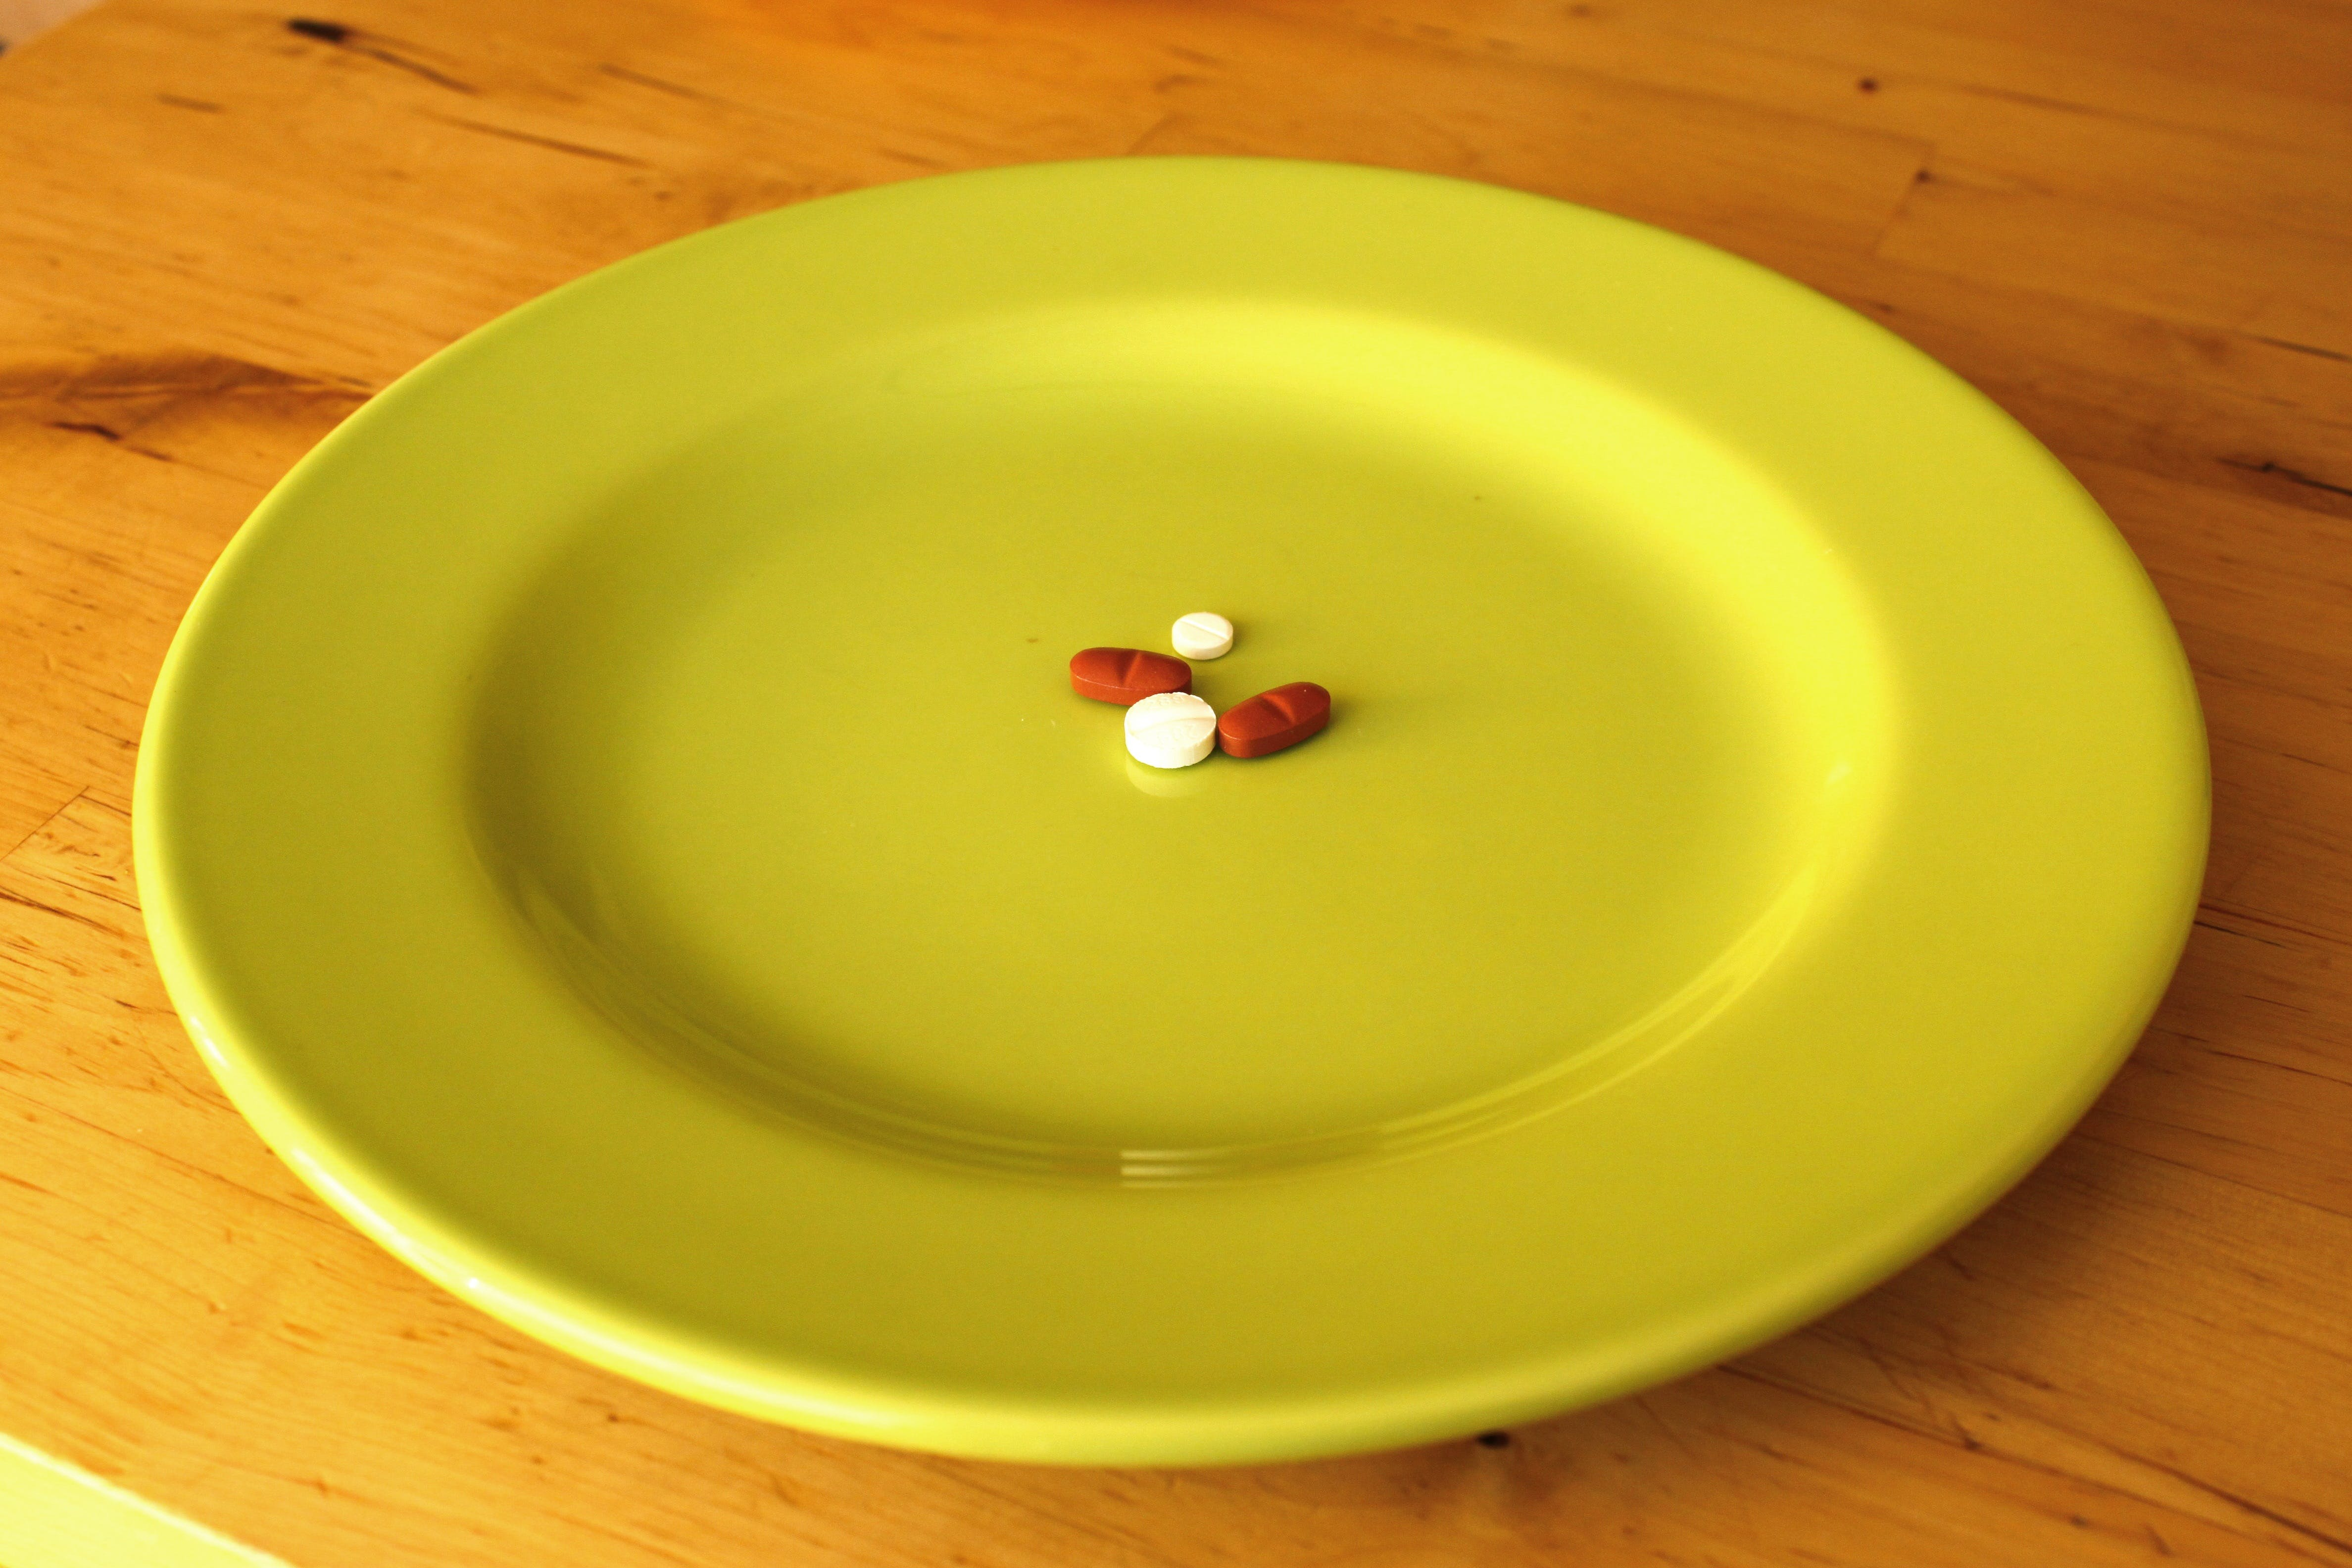 Free stock photo of plate, table, health, medicine